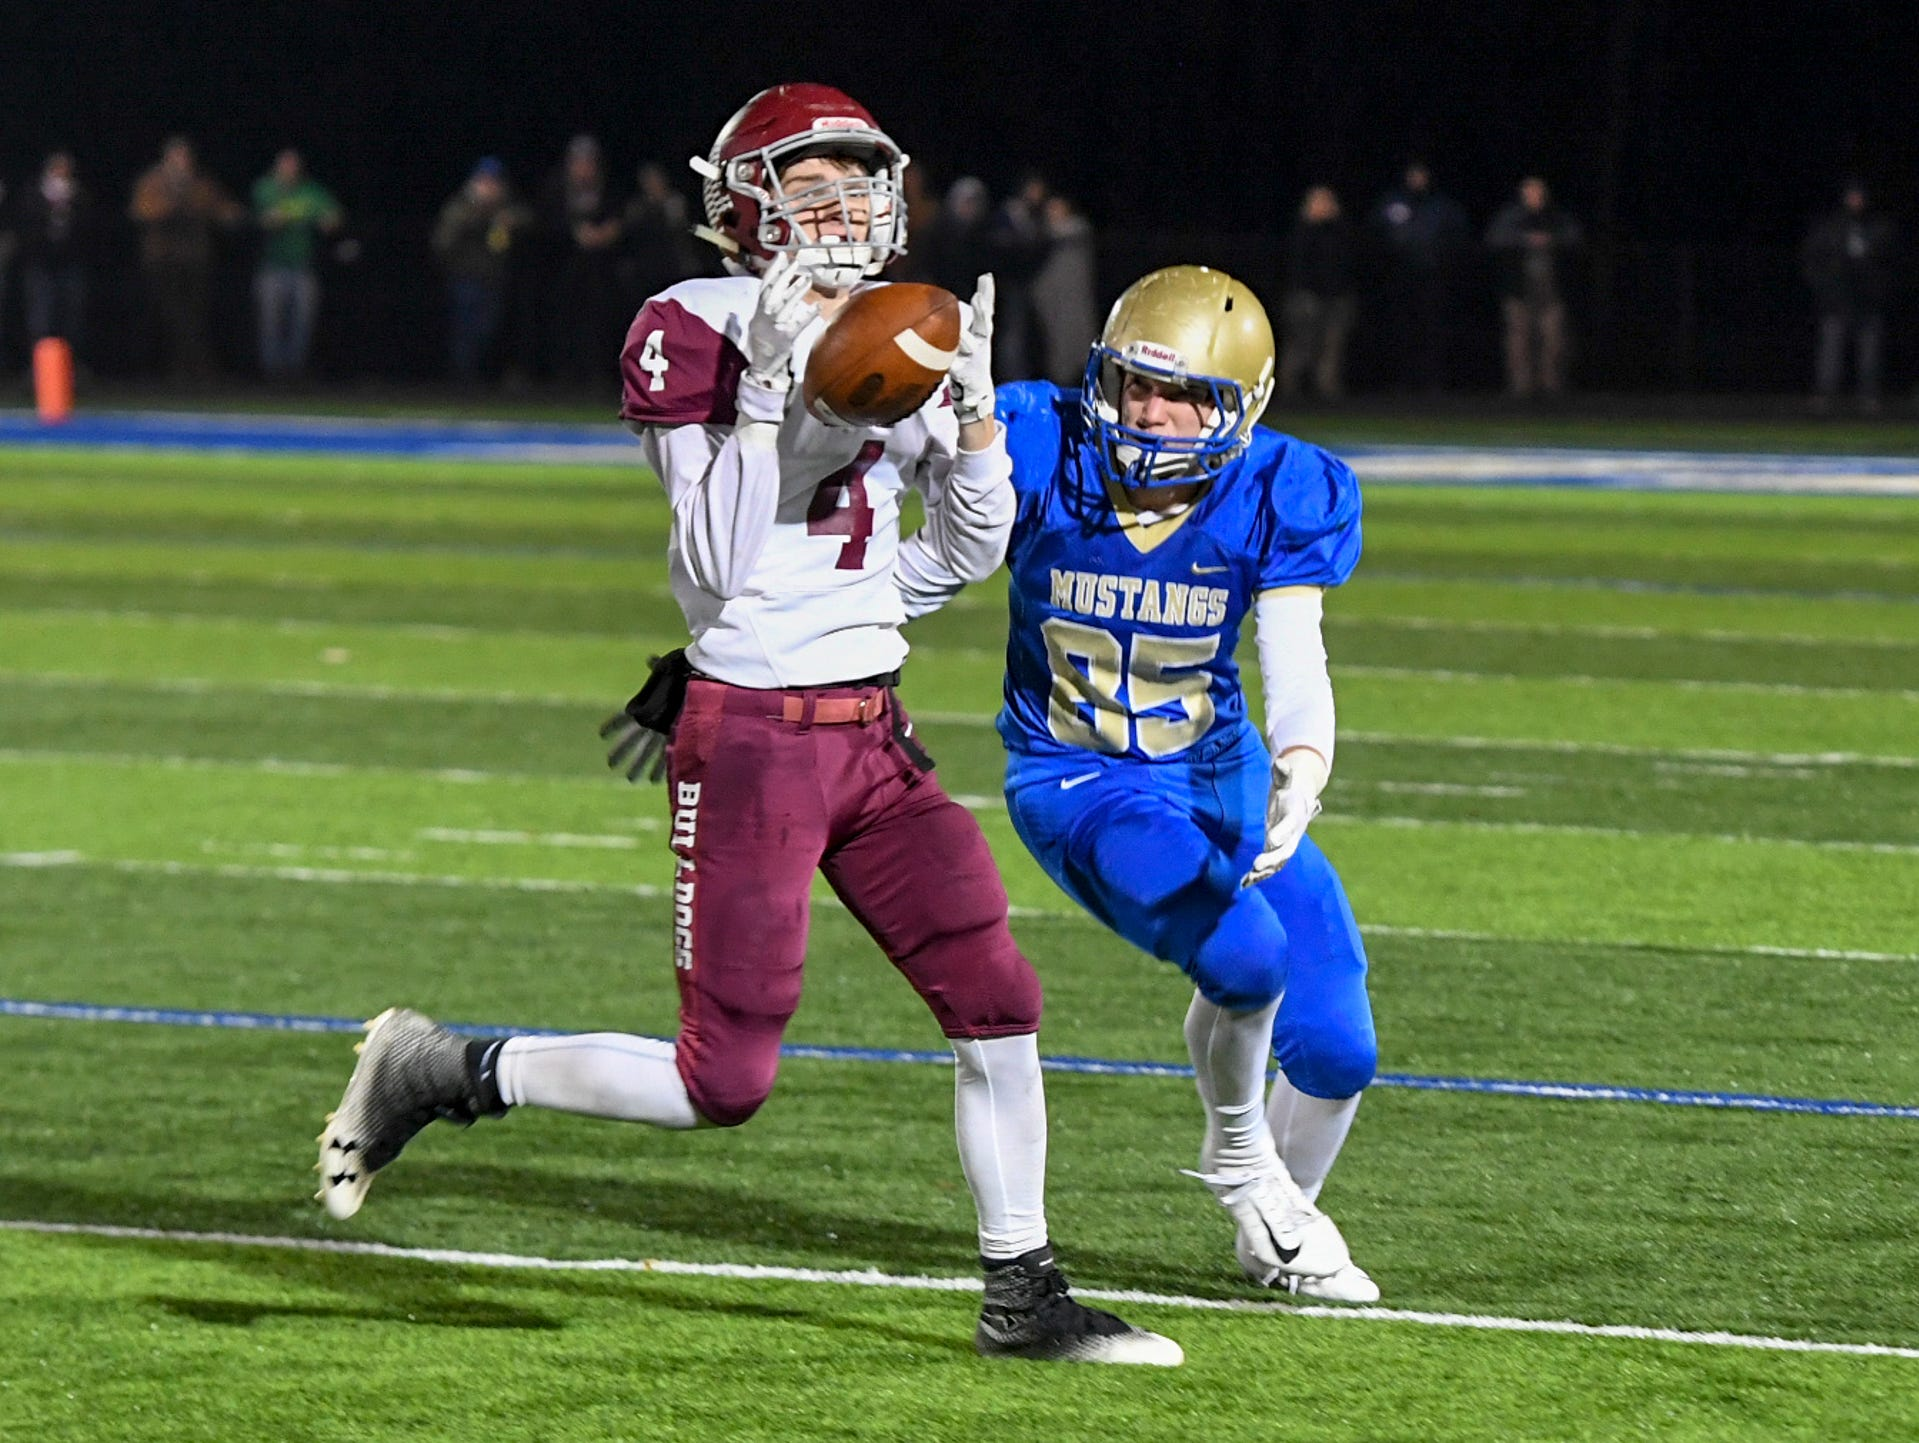 Cornersville's Ryan Prosser almost intercepts the ball from Huntingdon's Aden Hutcherson during their TSSAA Class A quarter final game, Friday, November 16. Huntingdon fell to Cornersville, 13-7.